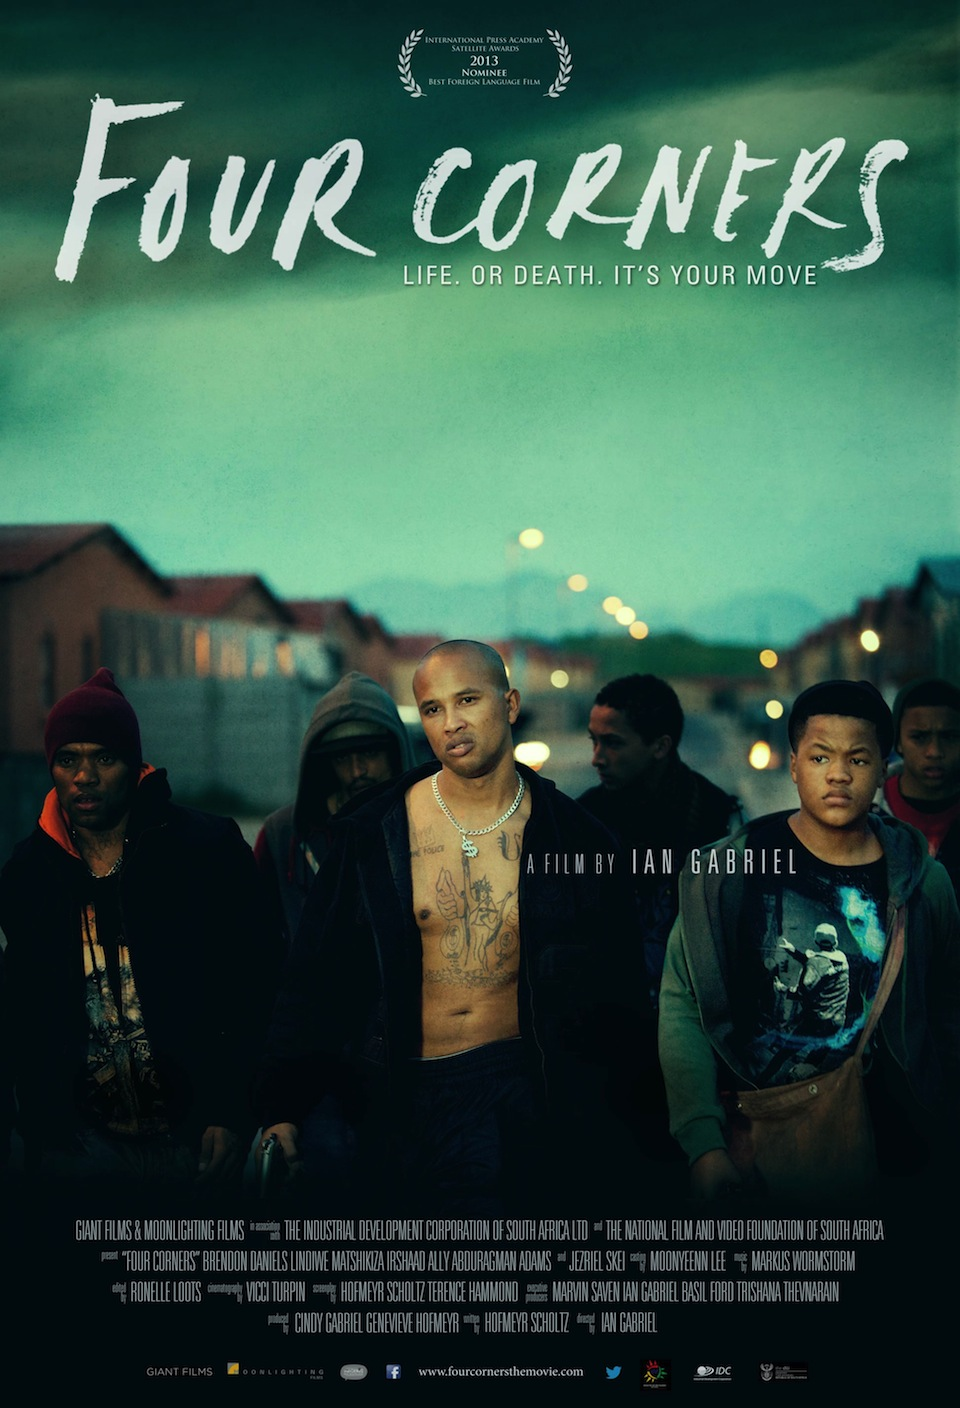 Four Corners, produced by Giant Films and directed by Ian Gabriel.